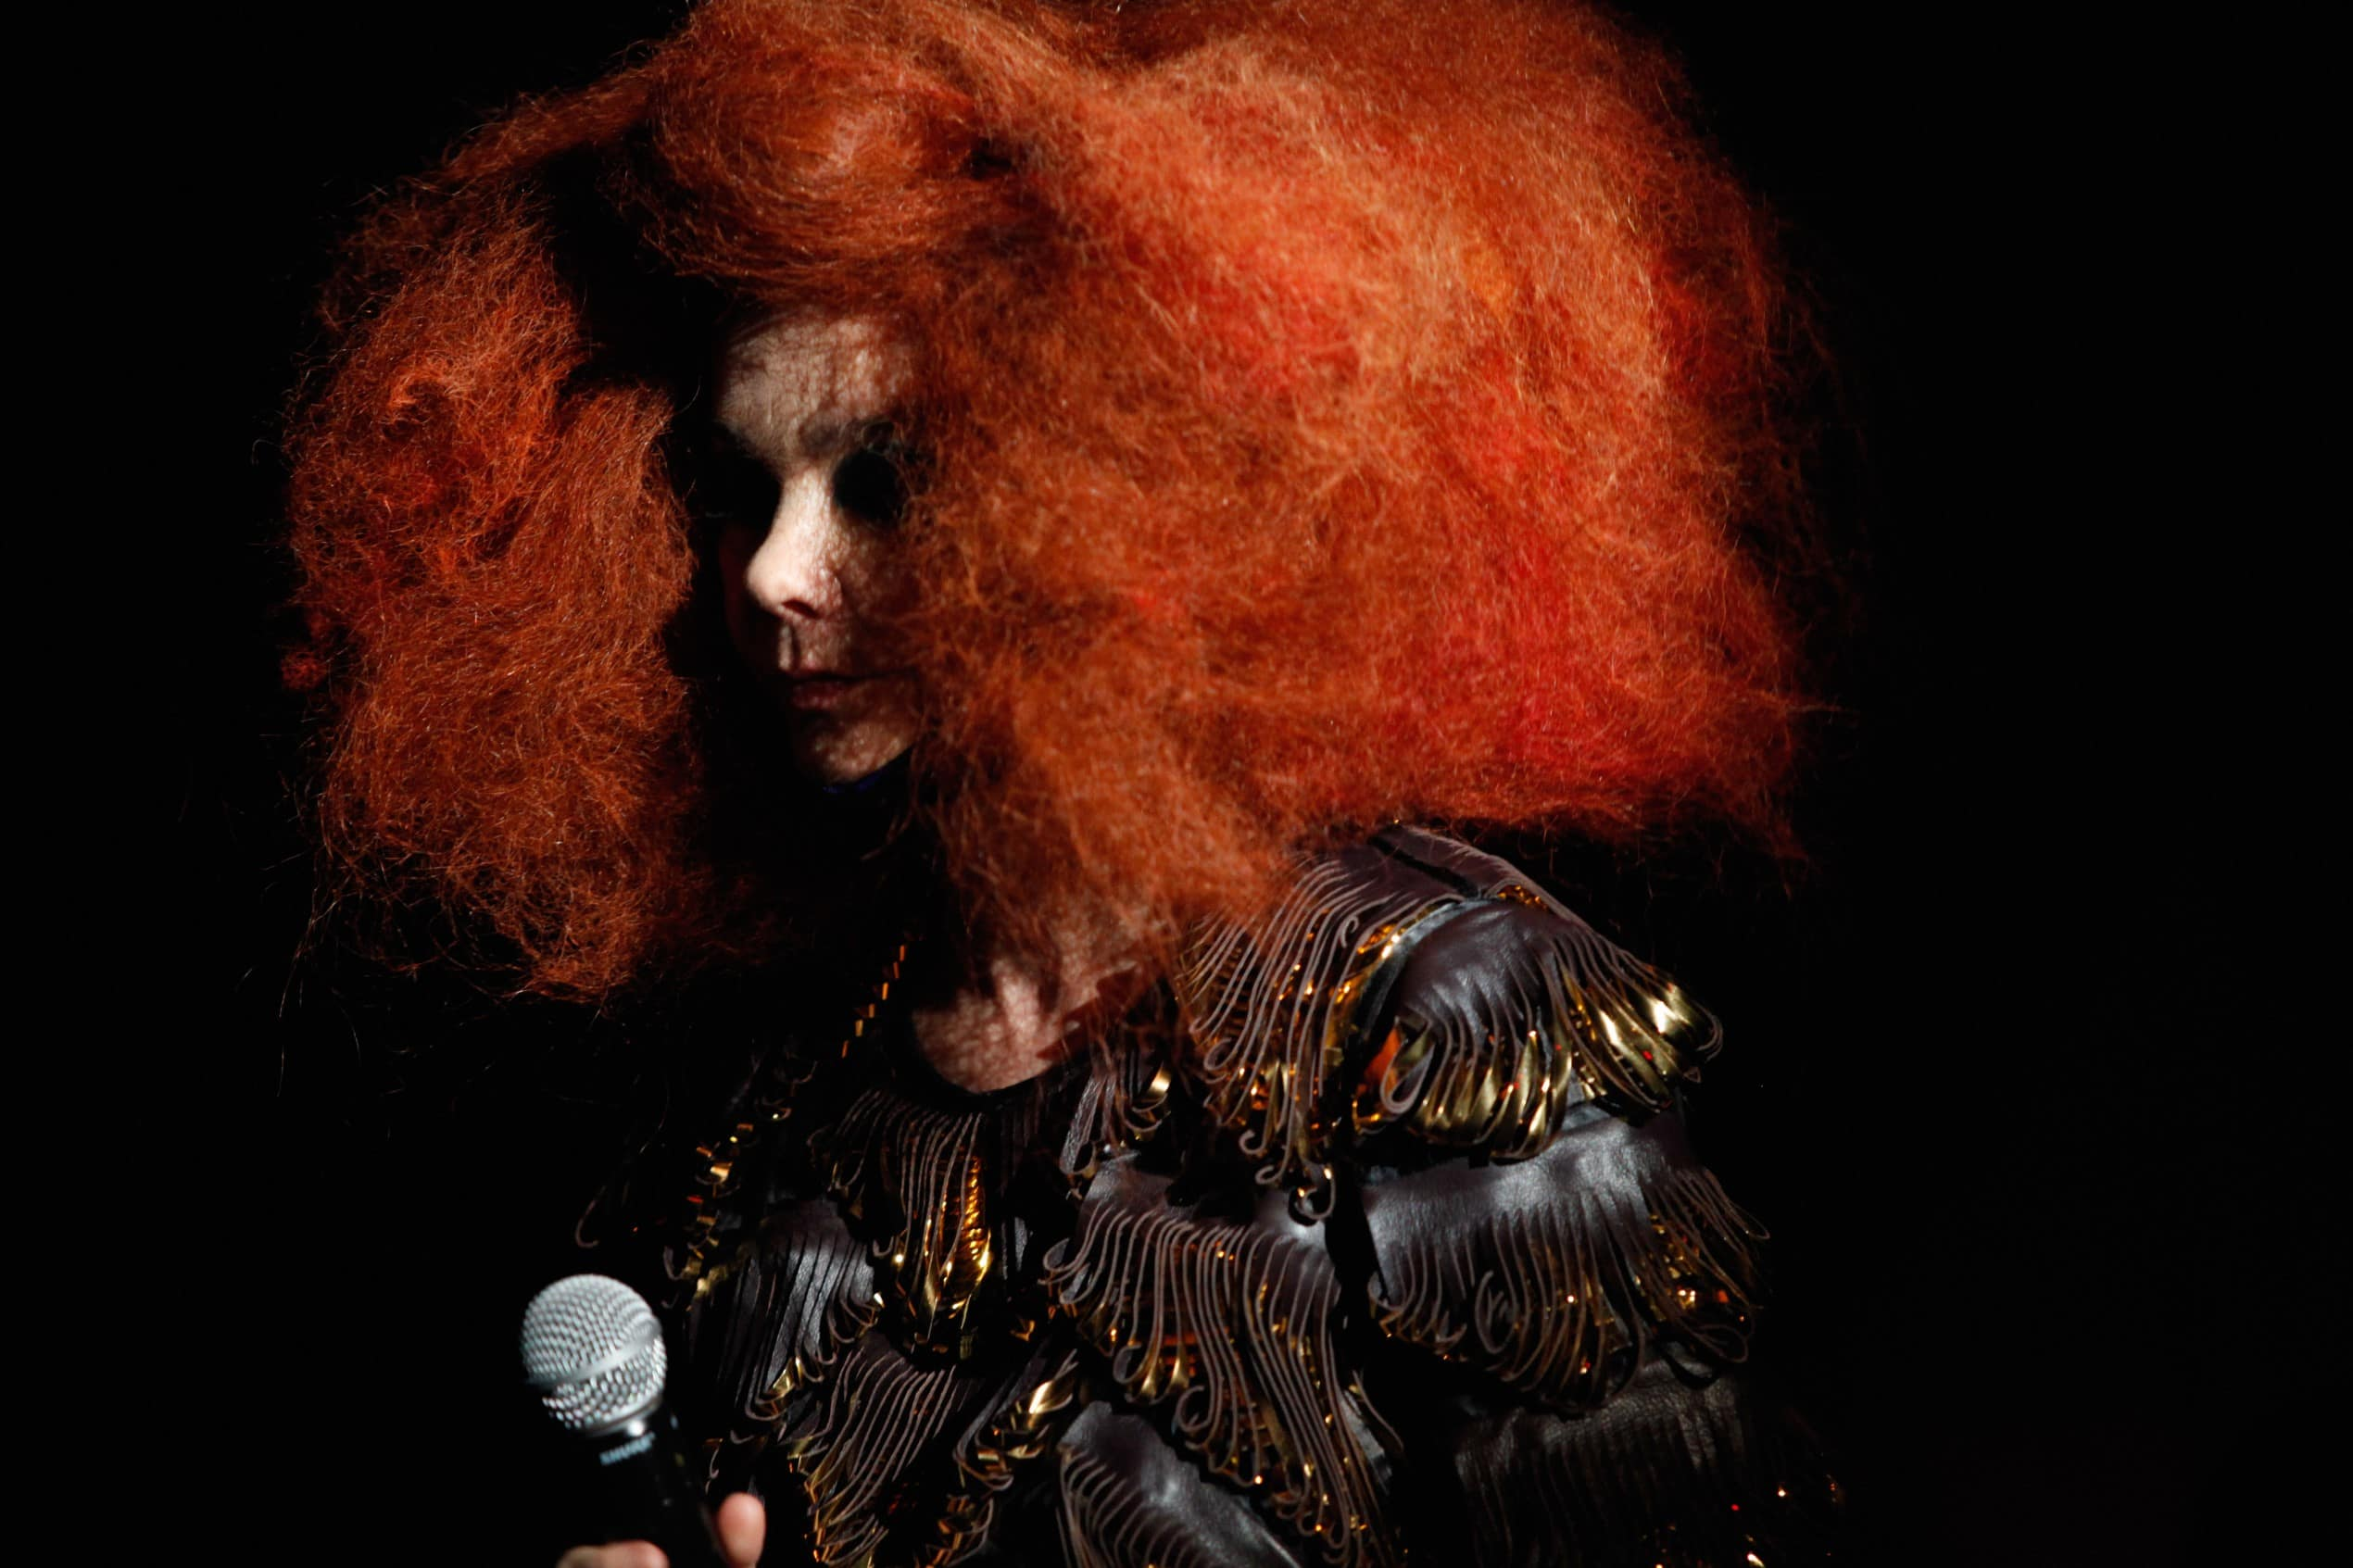 bjork pictured with a bright red hair style, wearing a black and gold jacket and facing side-on to the camera in a dark room